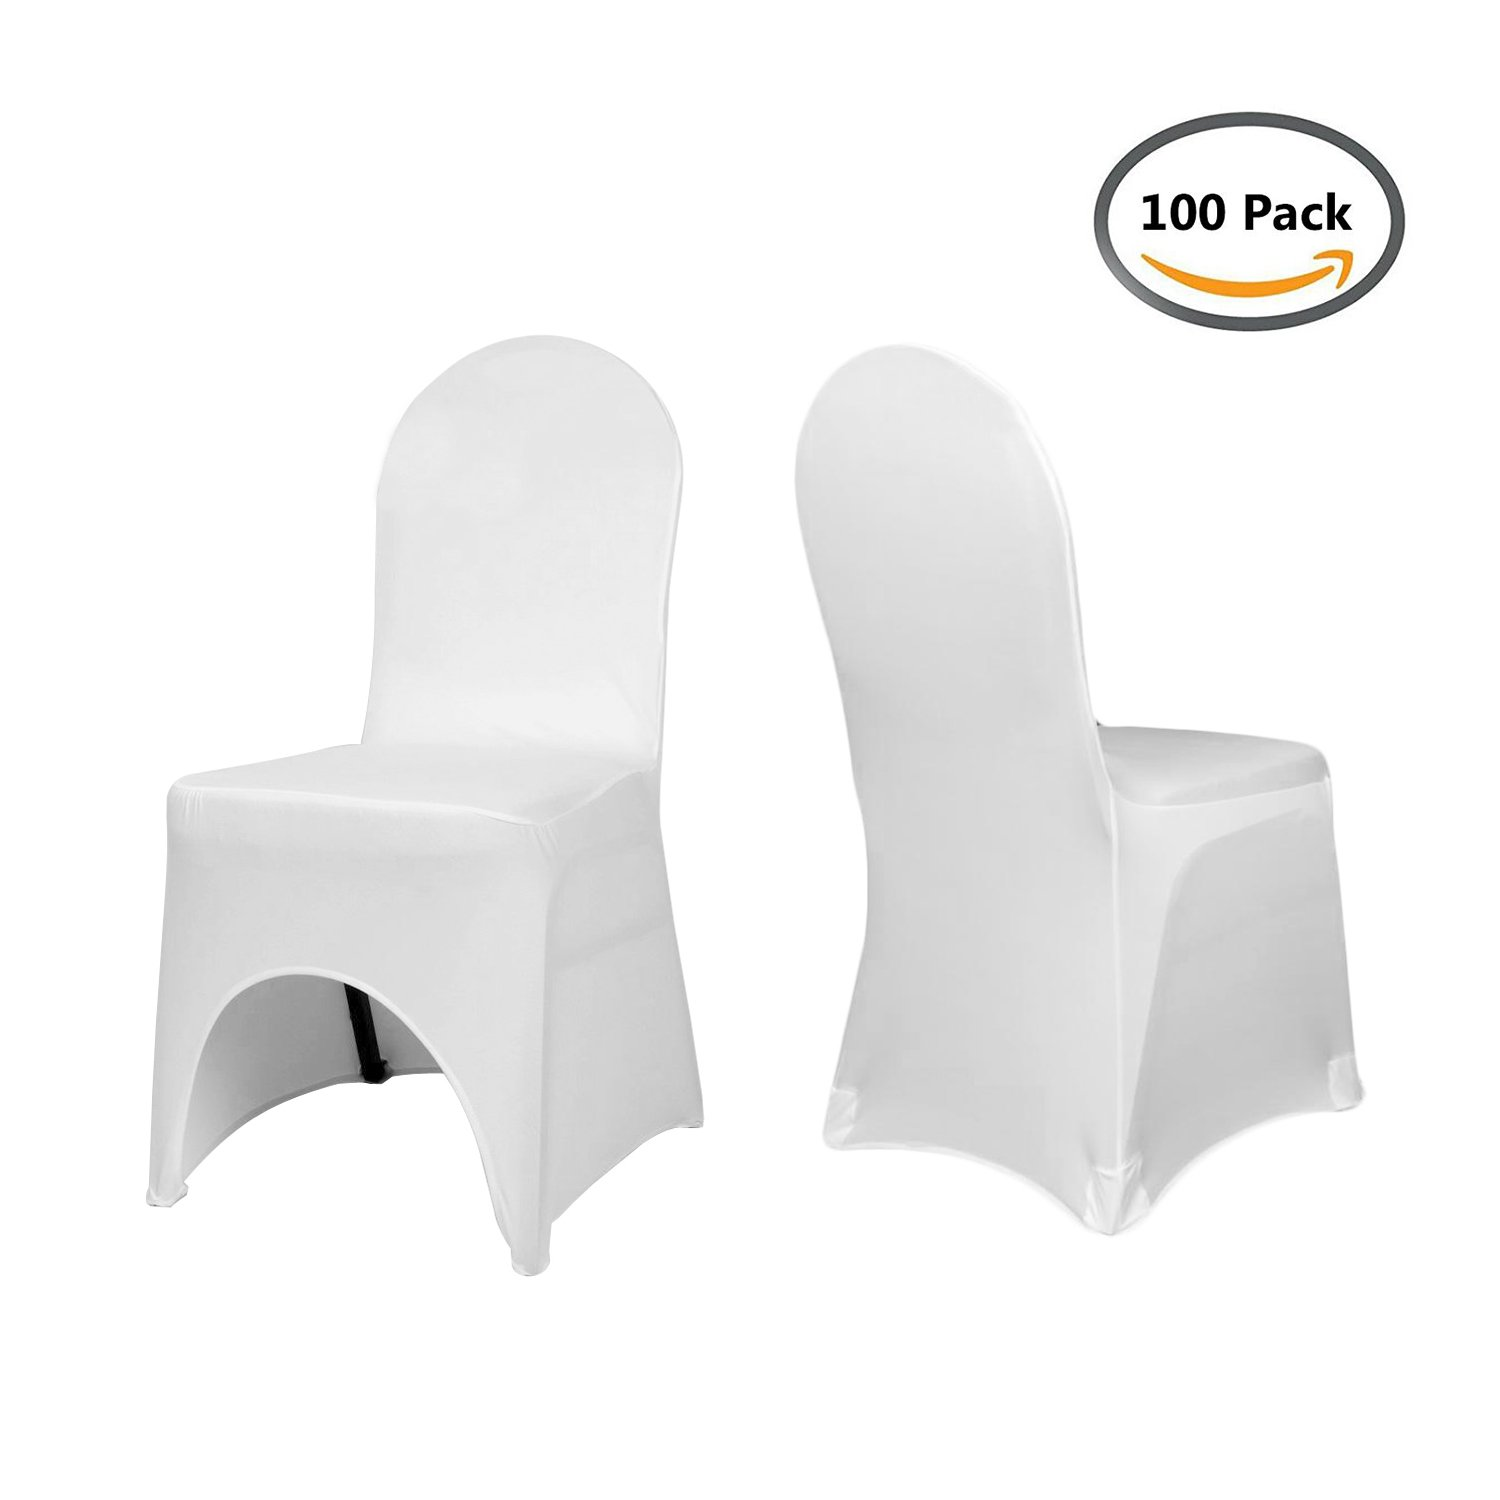 Homdox Universa 100pcs White Chair Covers Spandex/Lycra Metal & Plastic Folding Decoration For Wedding, Banquet, Party by Homdox